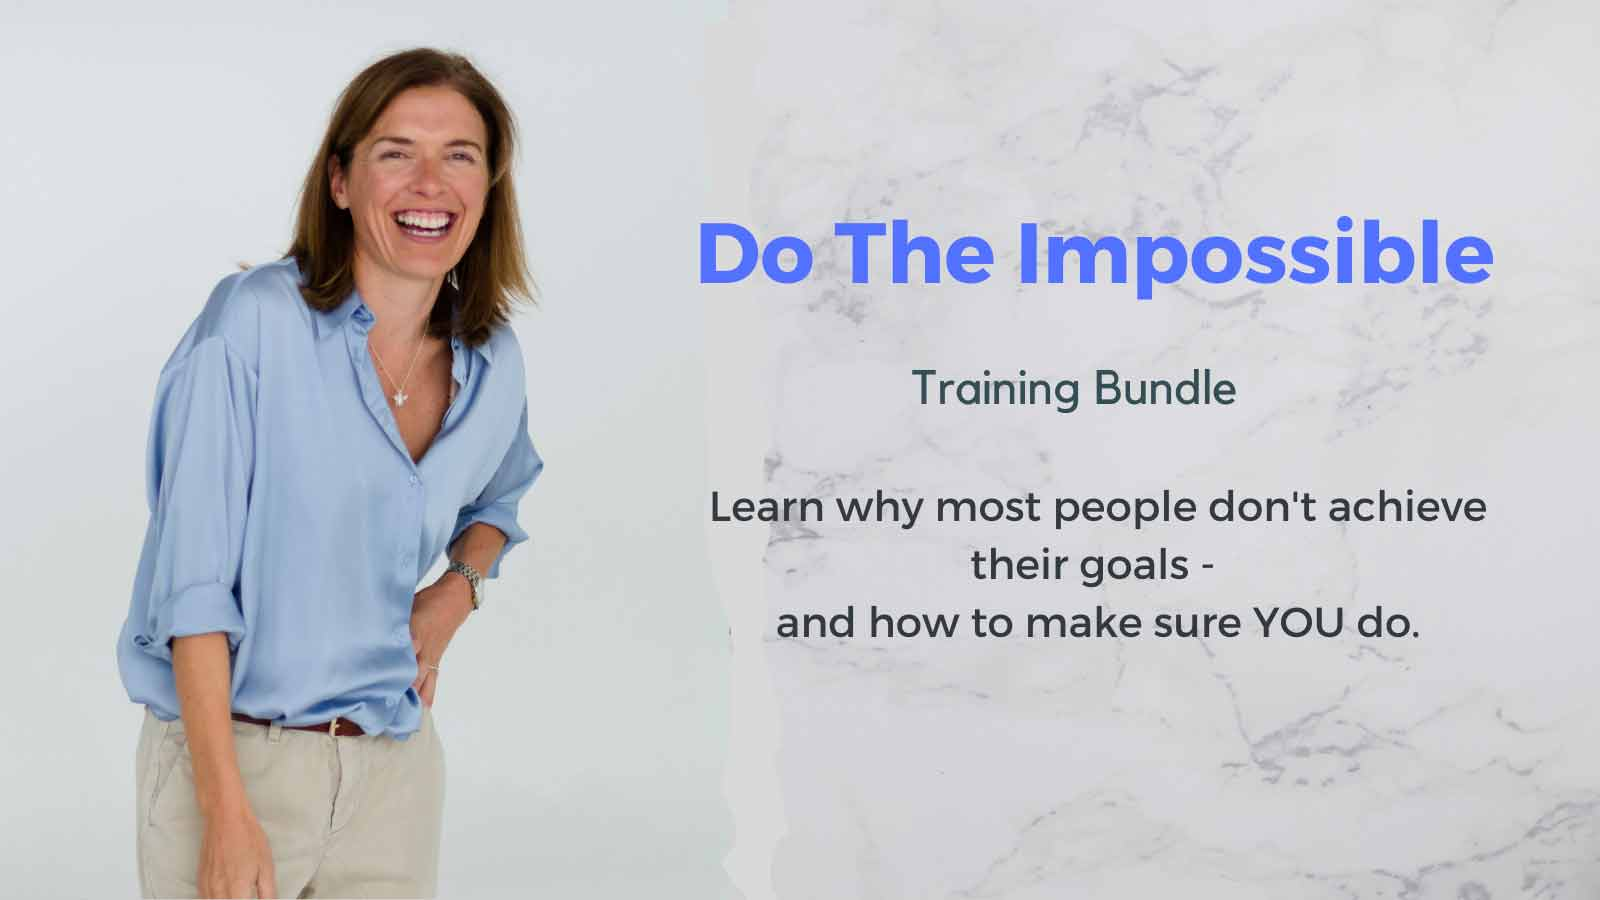 Image for Do the Impossible Training Bundle